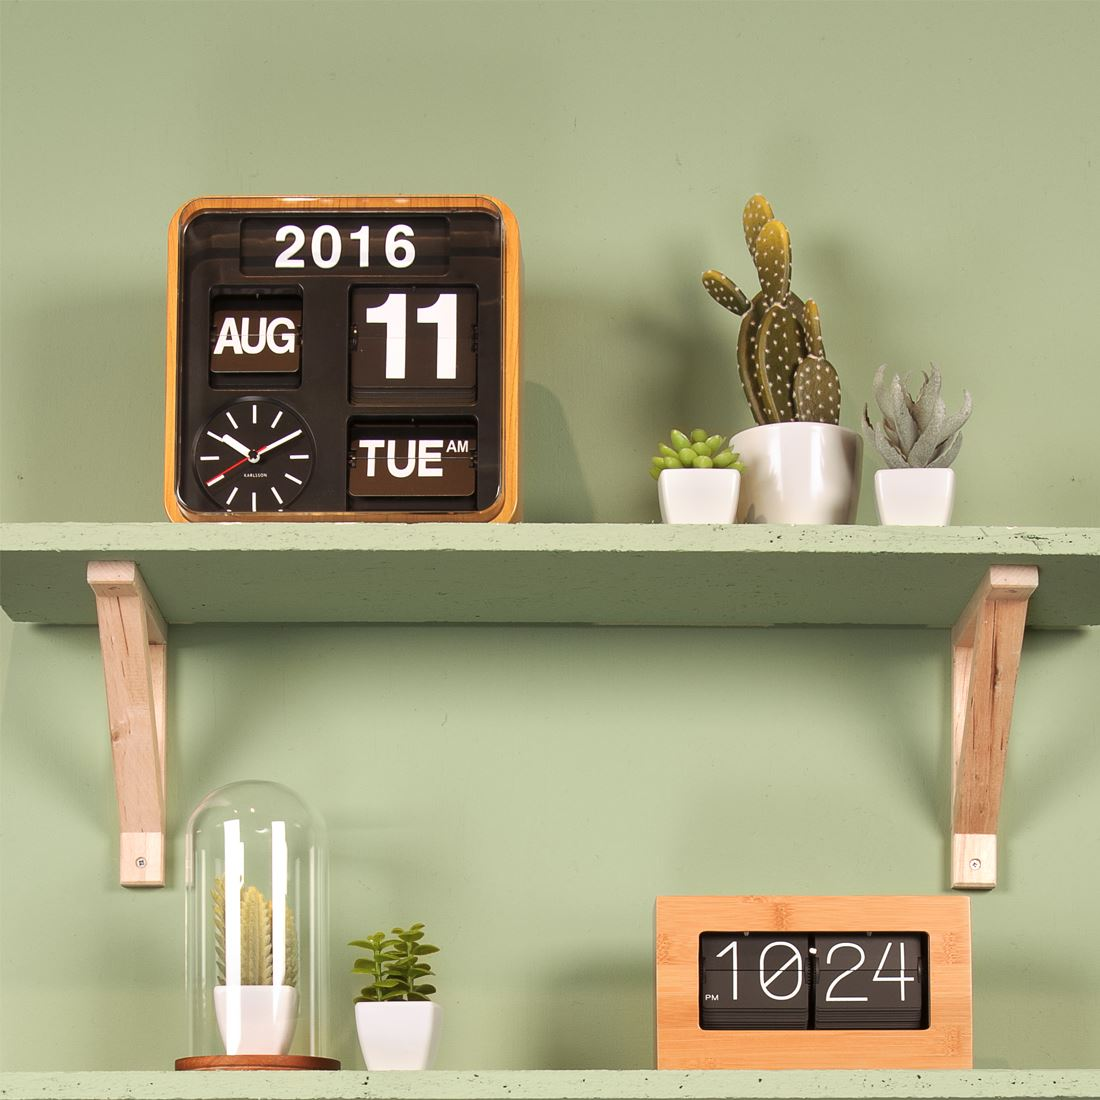 Wall clock with date and time karlsson big flip mini flip retro wall clocks with day date amipublicfo Choice Image